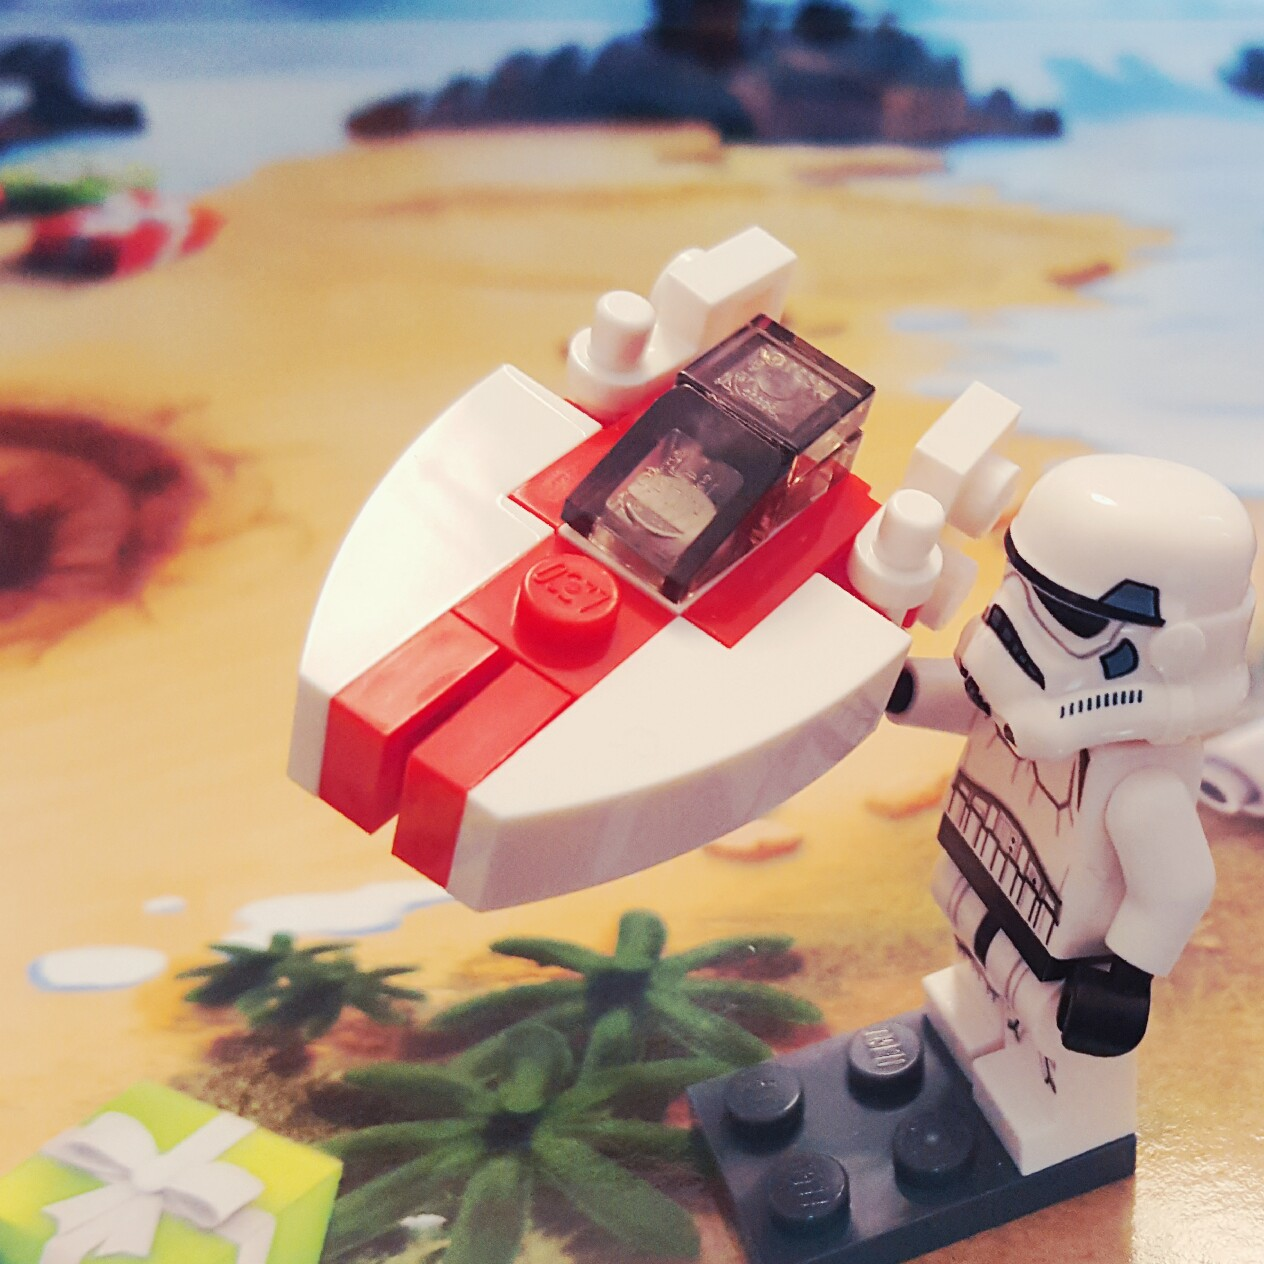 """Best. Toy. Evah!"" - Day 16 A-wing from LEGO Star Wars Advent Calendar"